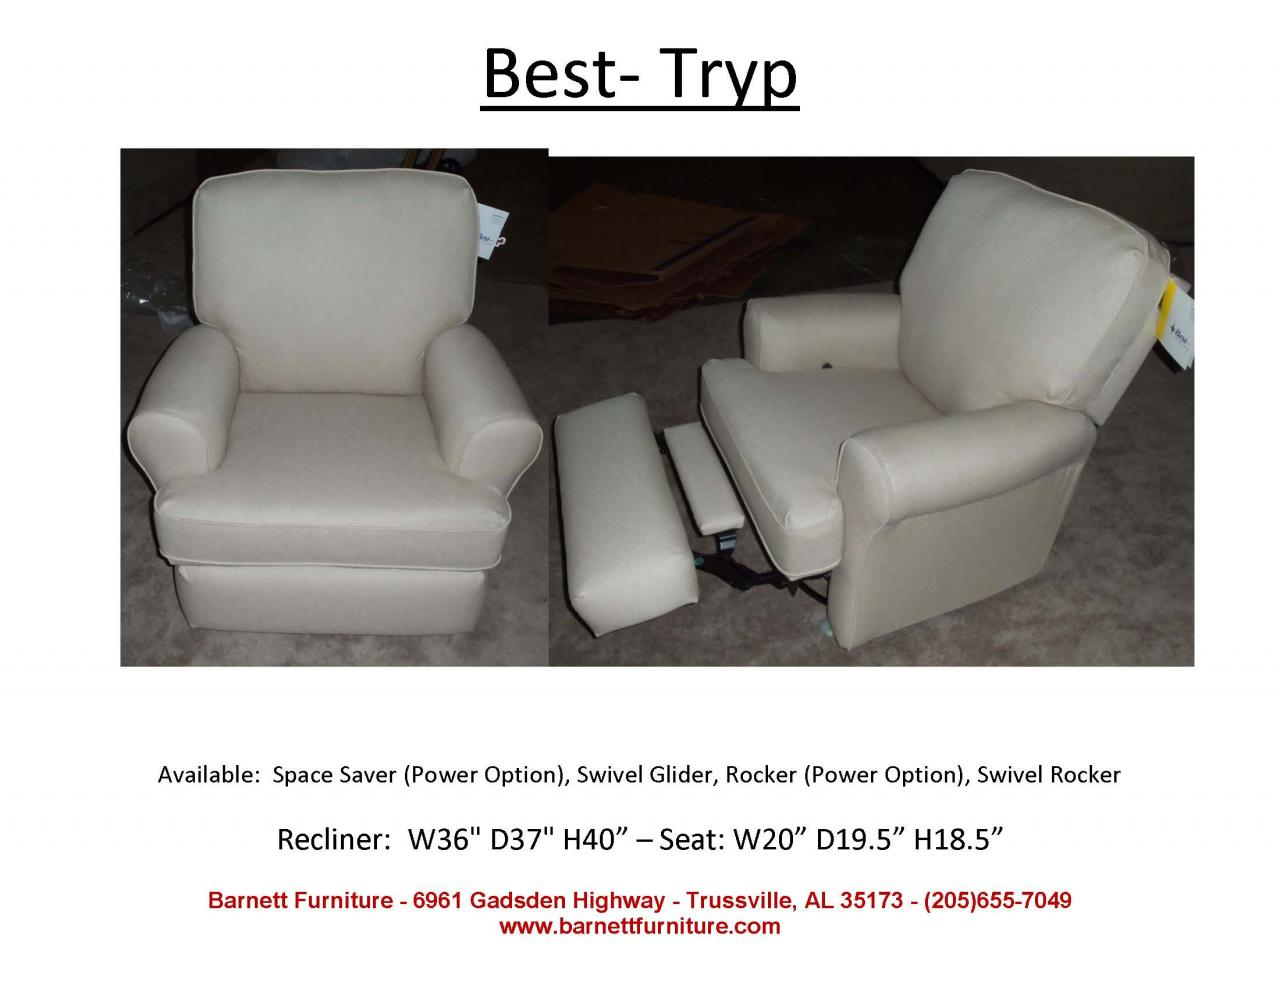 Barnett Furniture Recliners